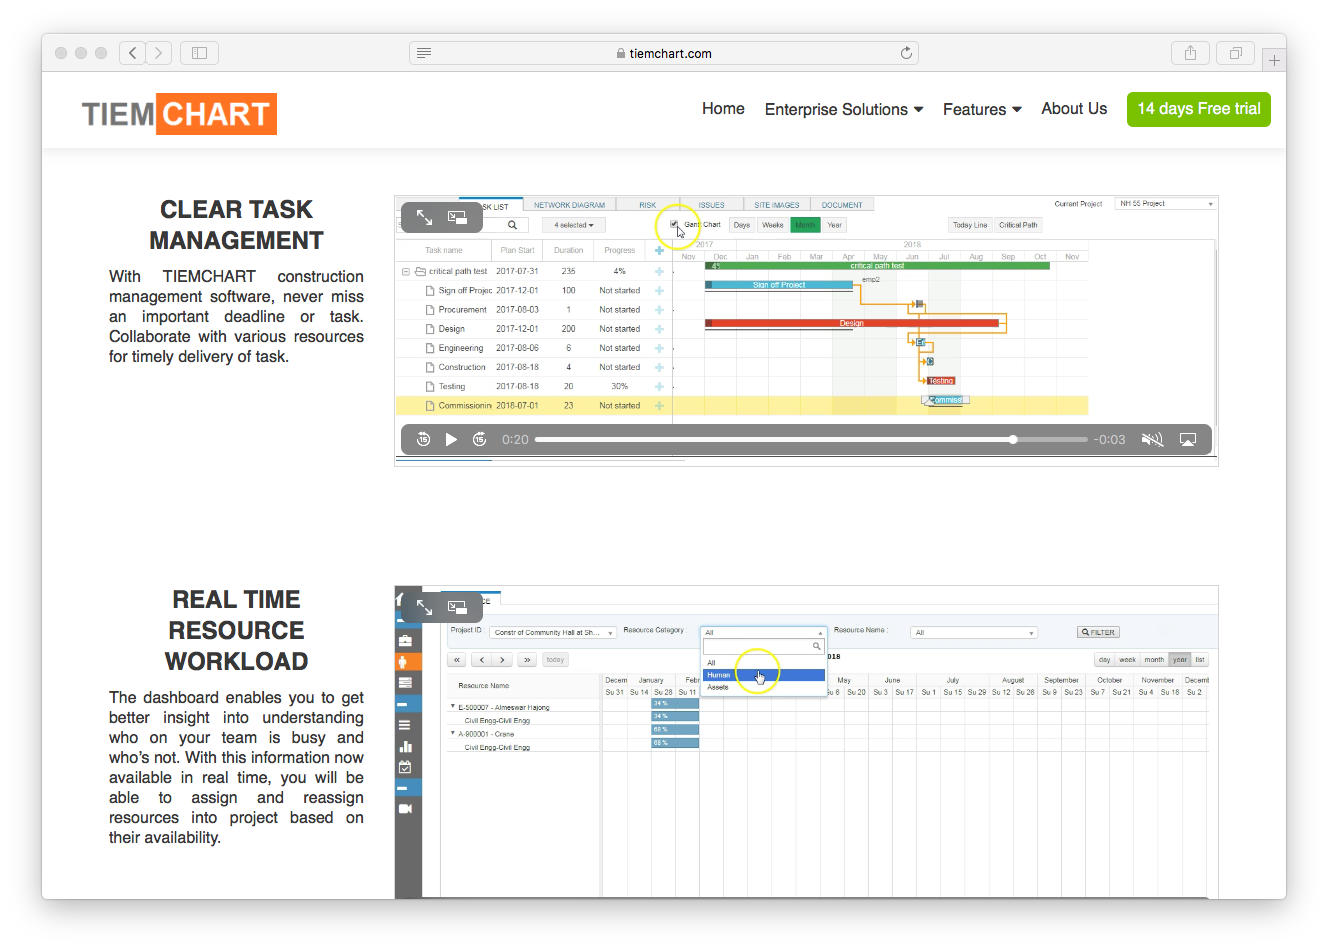 Clear Task Management and Real Time Resource Workload for TIEMCHART screenshot